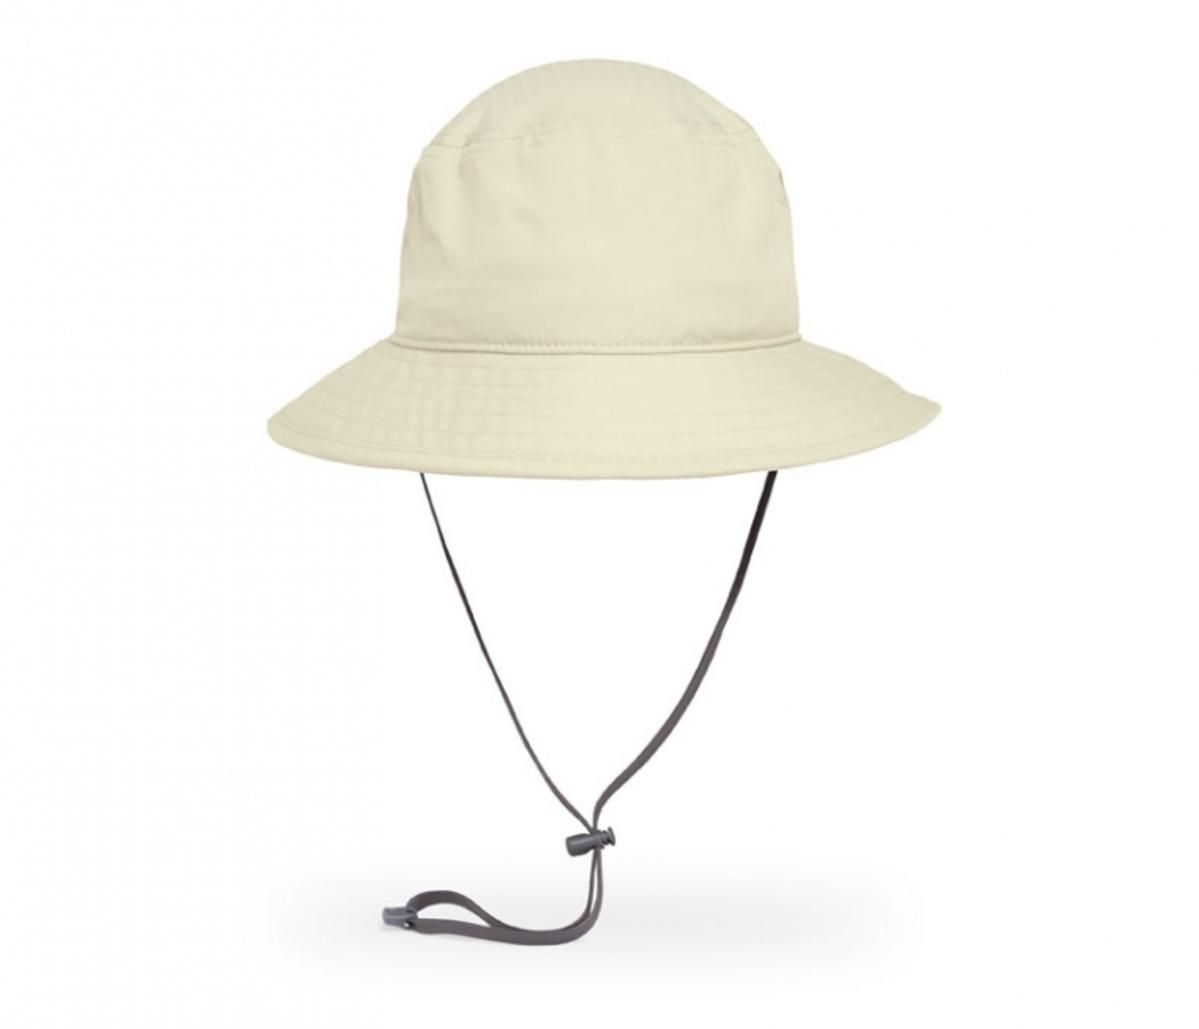 1594ee70 Sunday Afternoons Sunfire Bucket Hat - The Warming Store